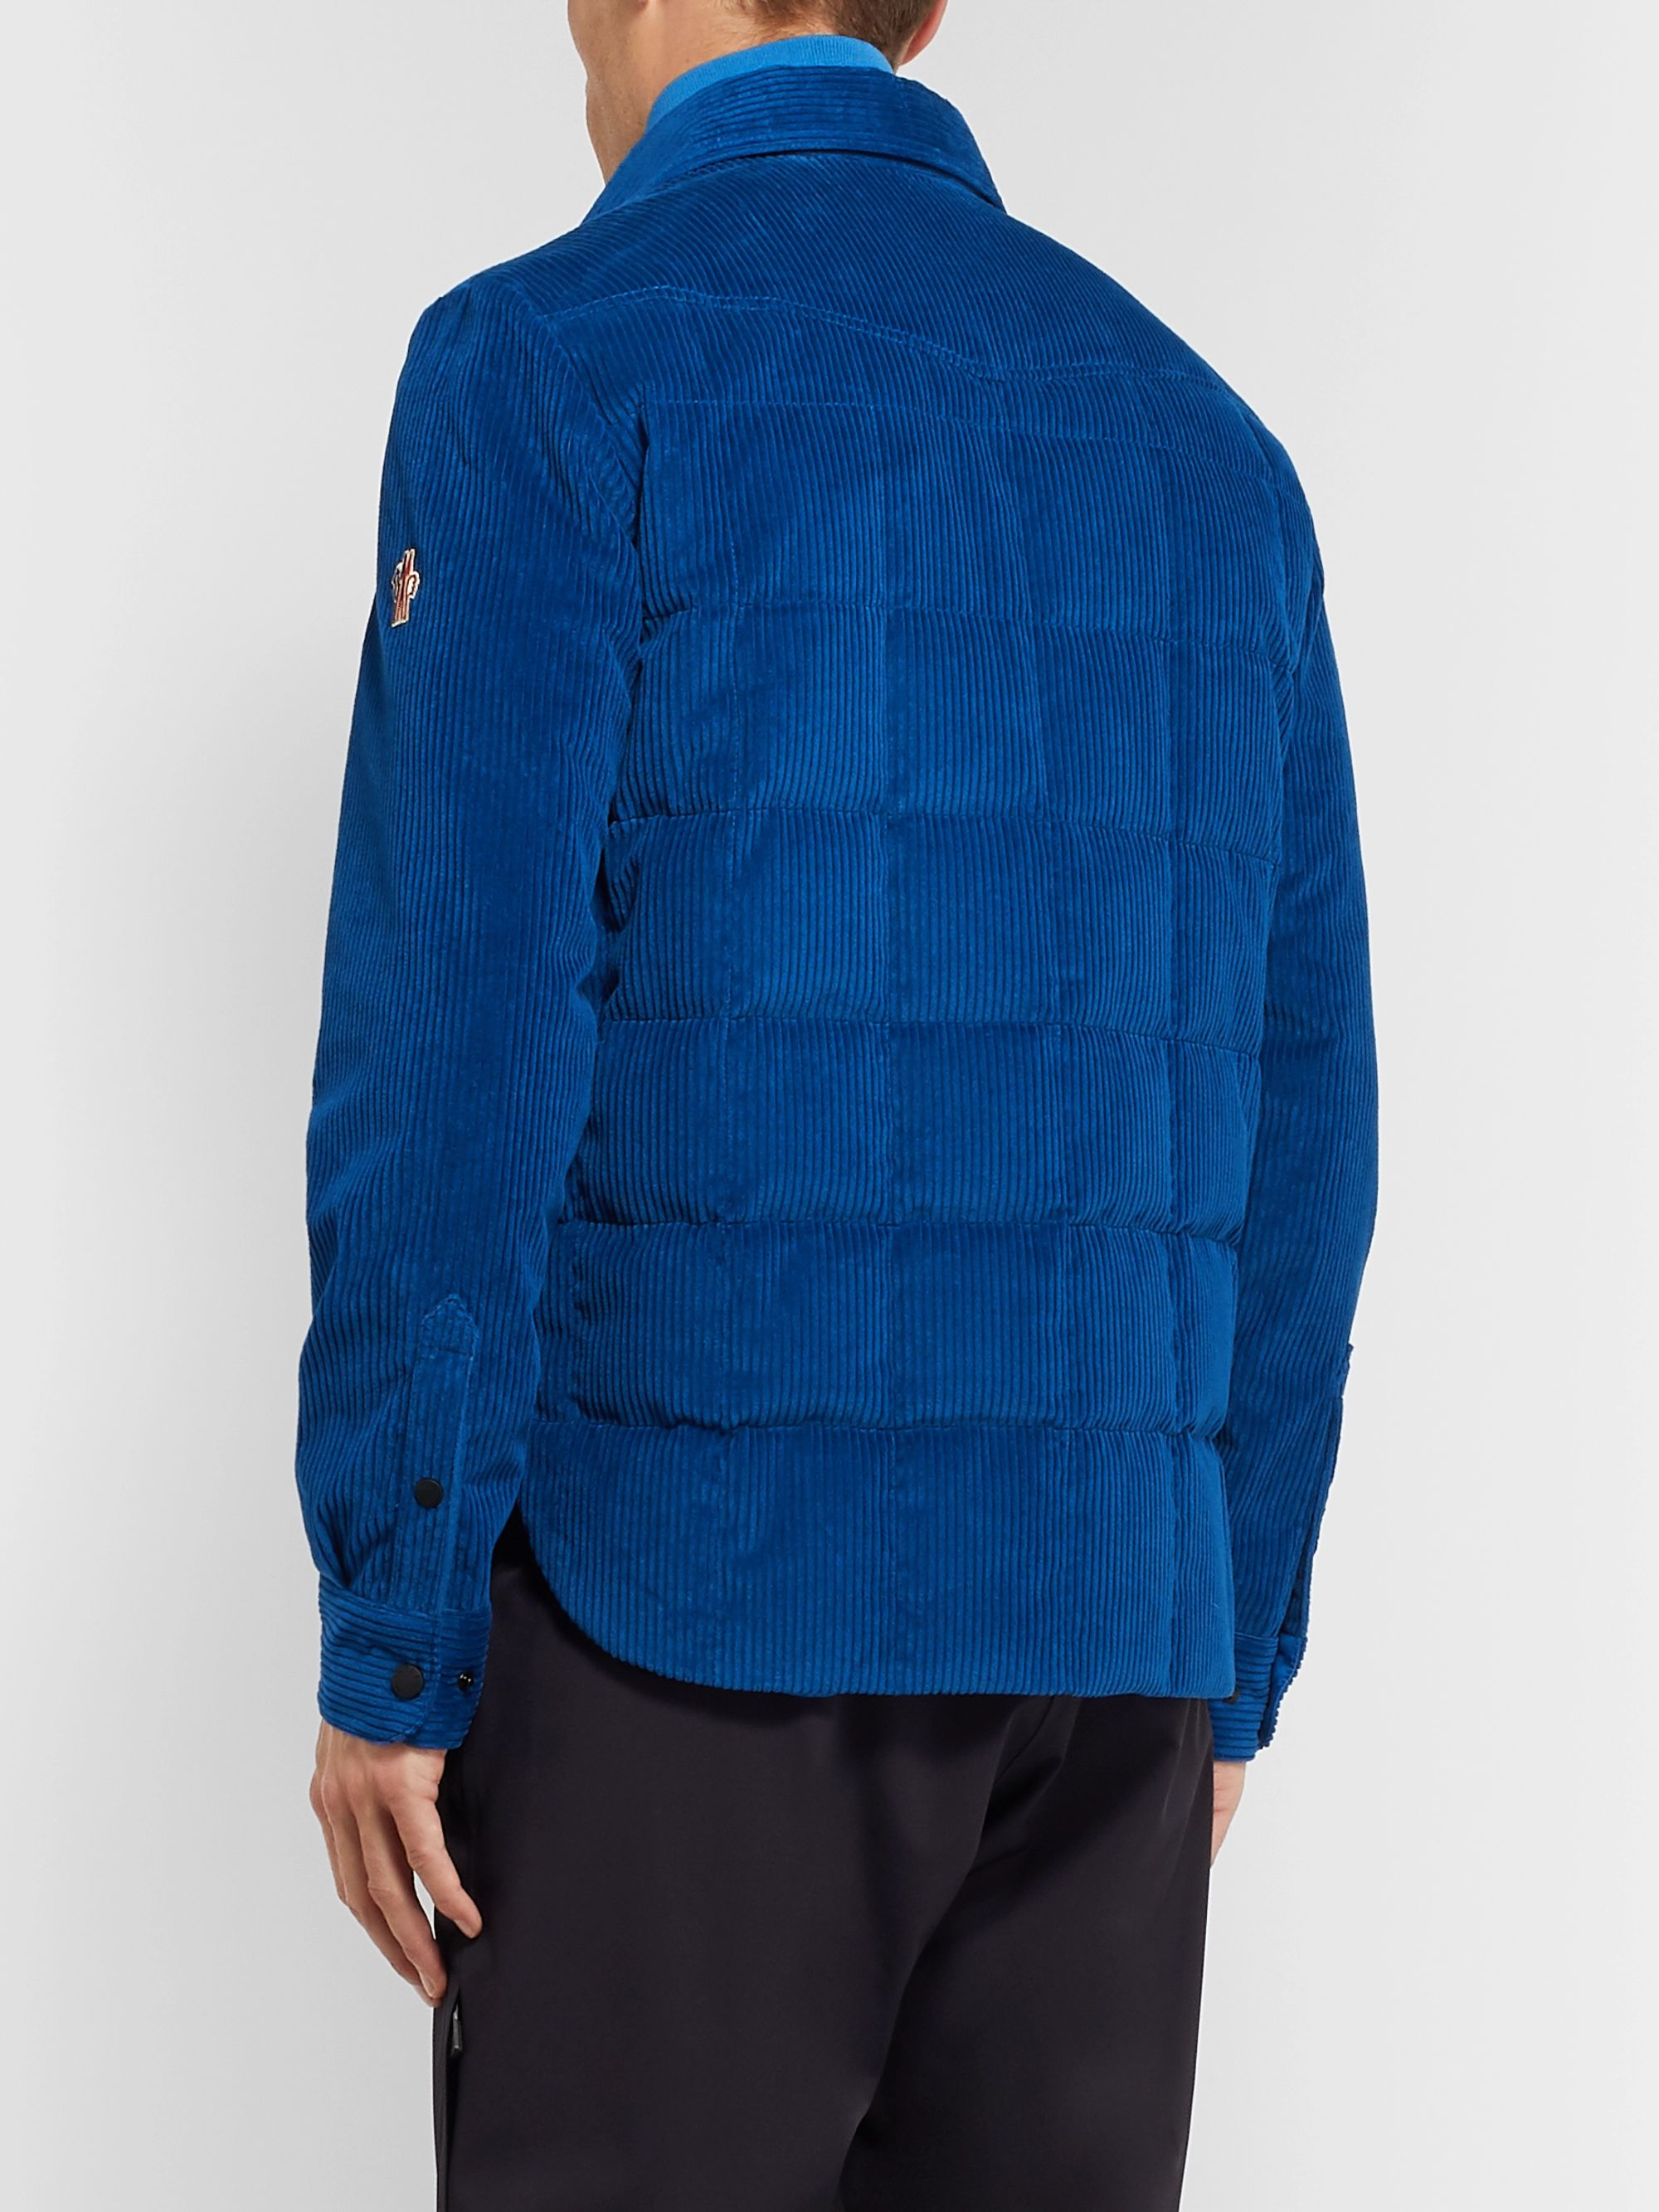 Moncler Grenoble Gelt Quilted Cotton-Blend Corduroy Down Jacket